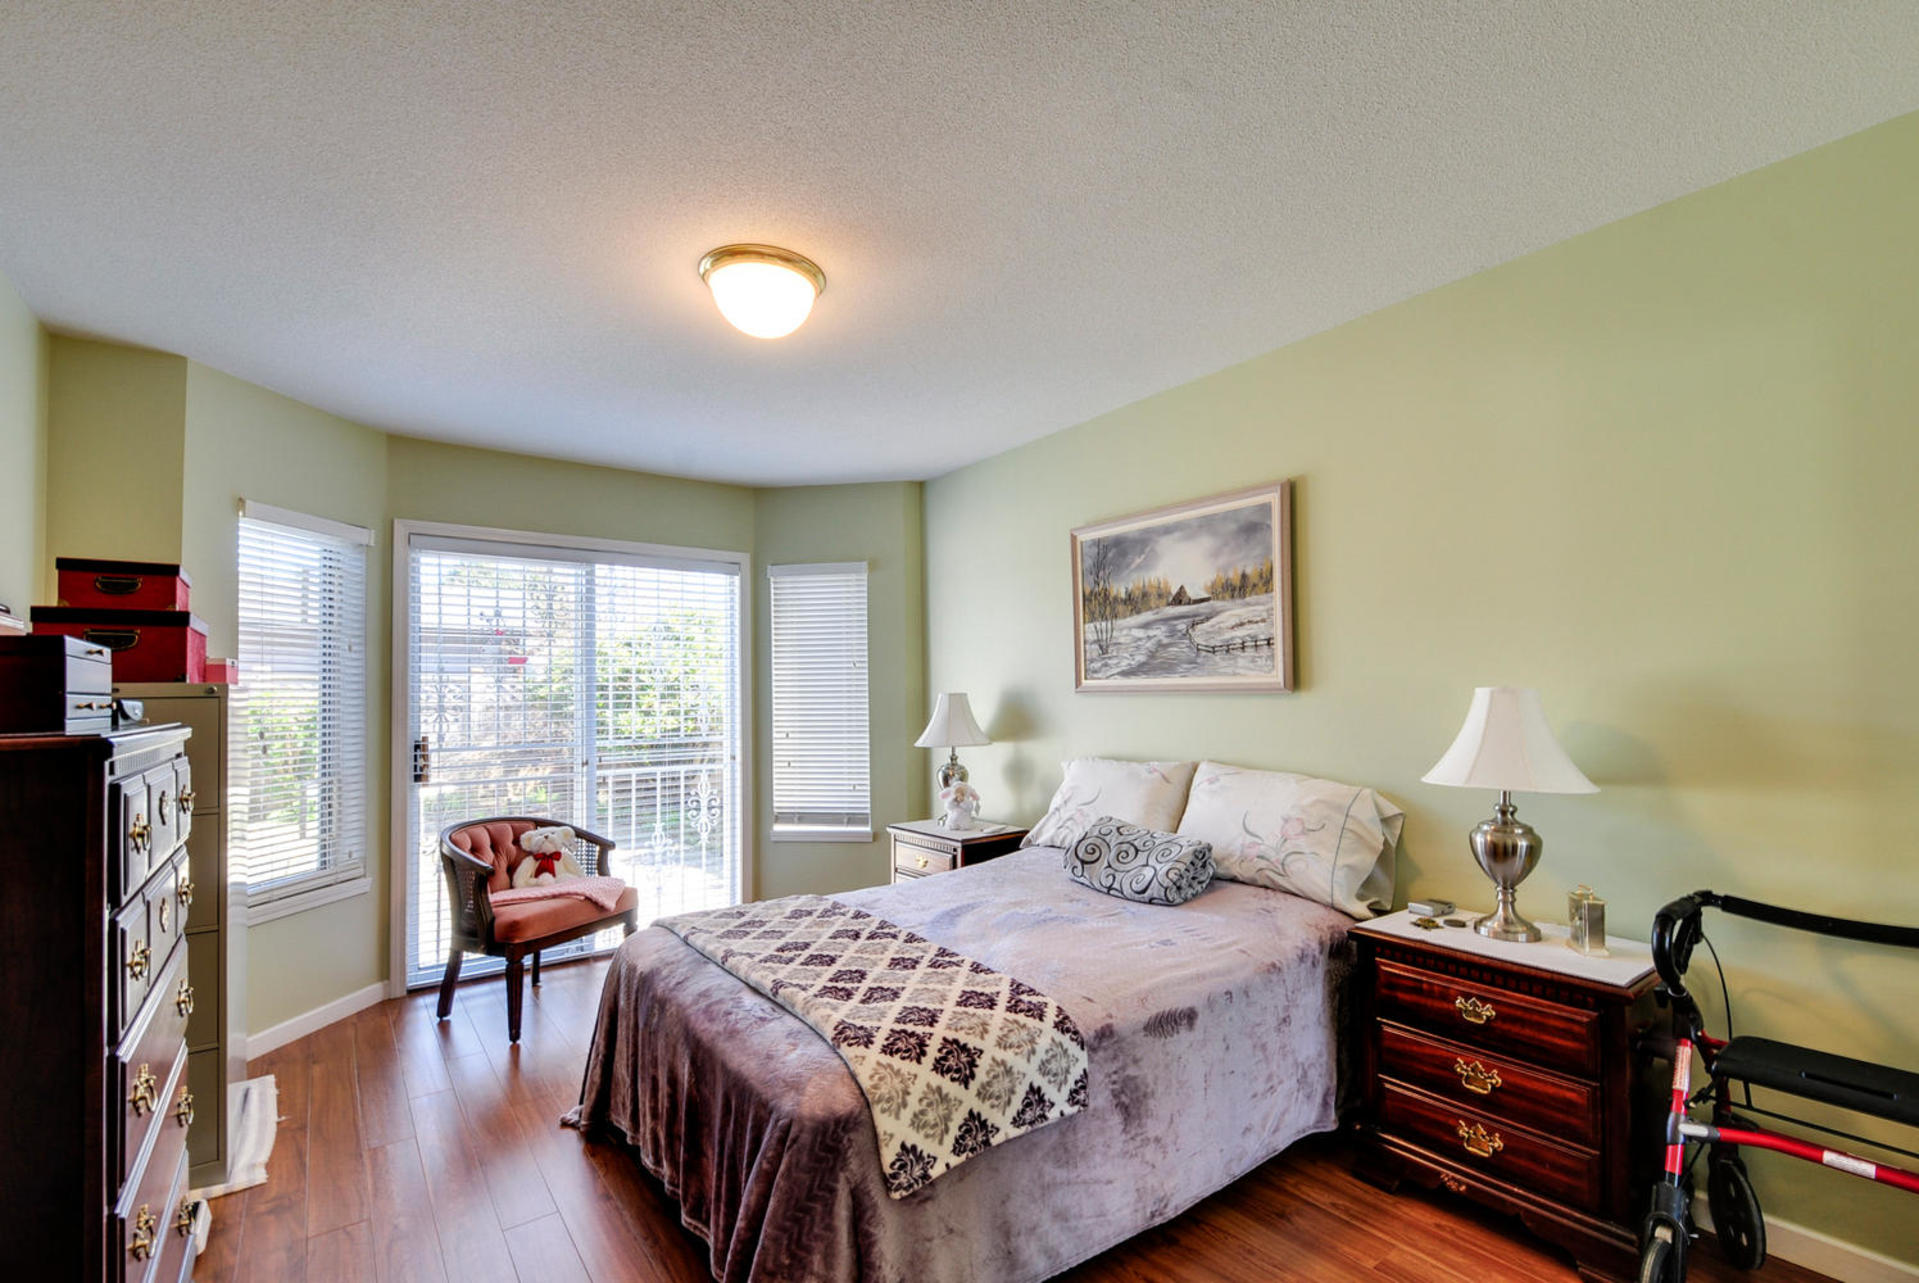 5138-calvert-dr-large-014-10-bedroom-1496x1000-72dpi at 5138 Calvert Drive, Neilsen Grove, Ladner